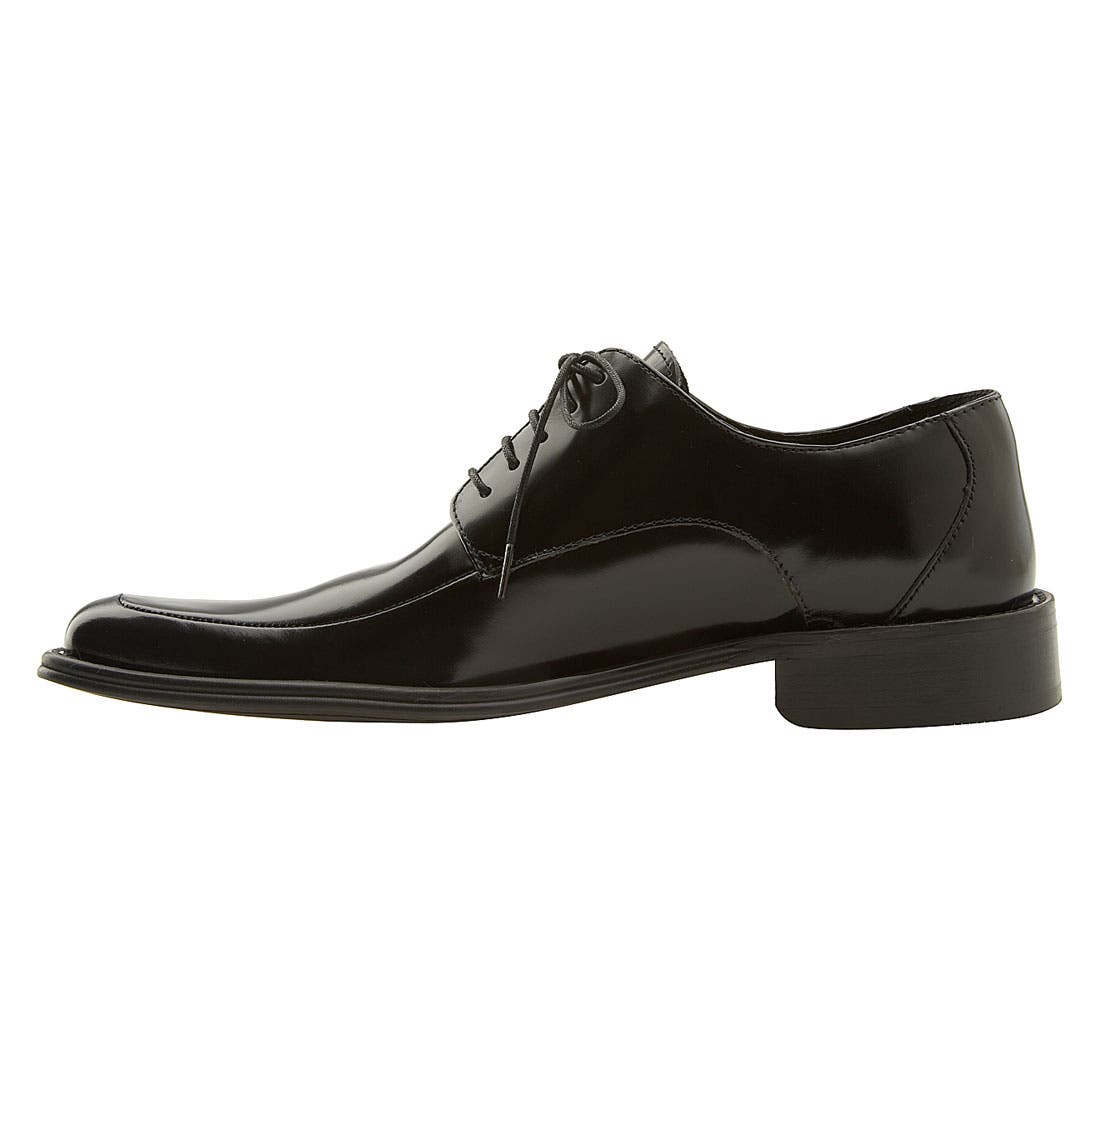 Alternate Image 2  - Kenneth Cole New York 'Town Hall' Apron Toe Oxford (Online Only)